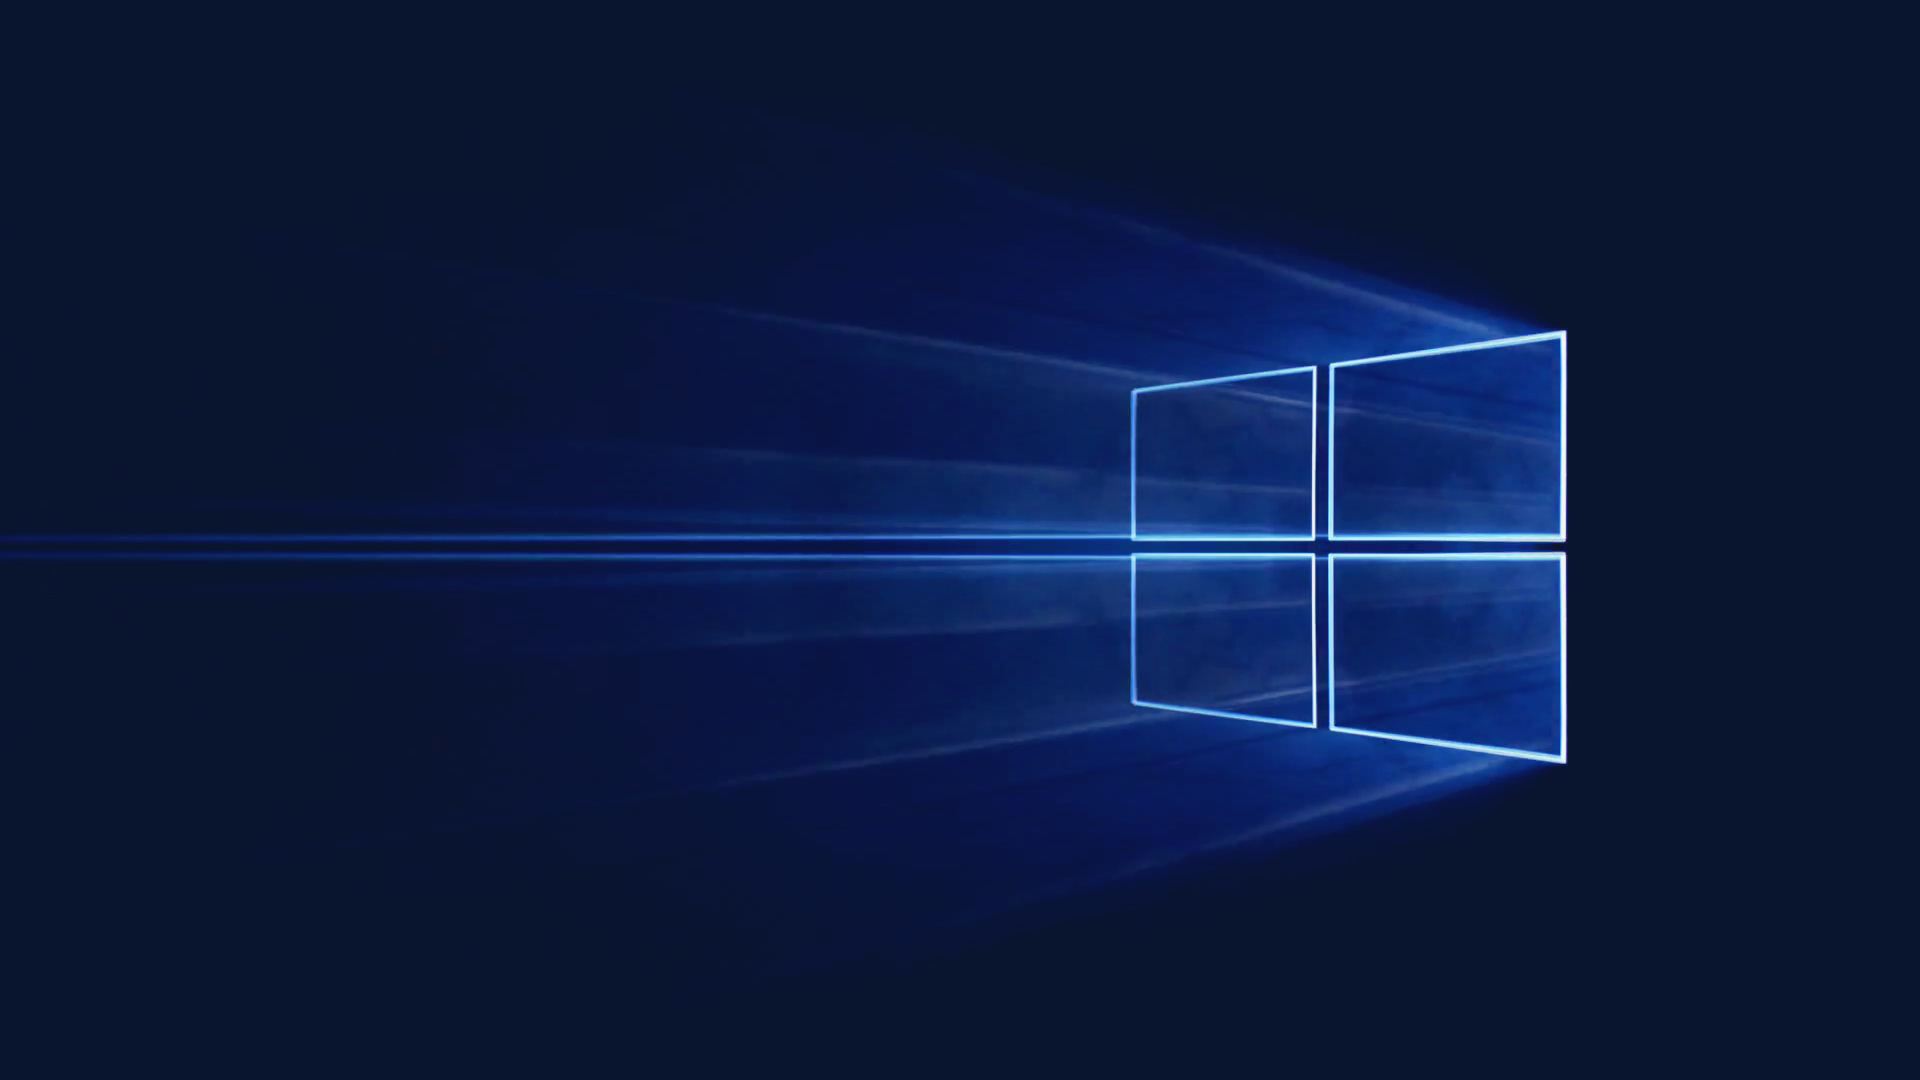 Windows 10 Original Wallpaper Hd Download لم يسبق له مثيل الصور